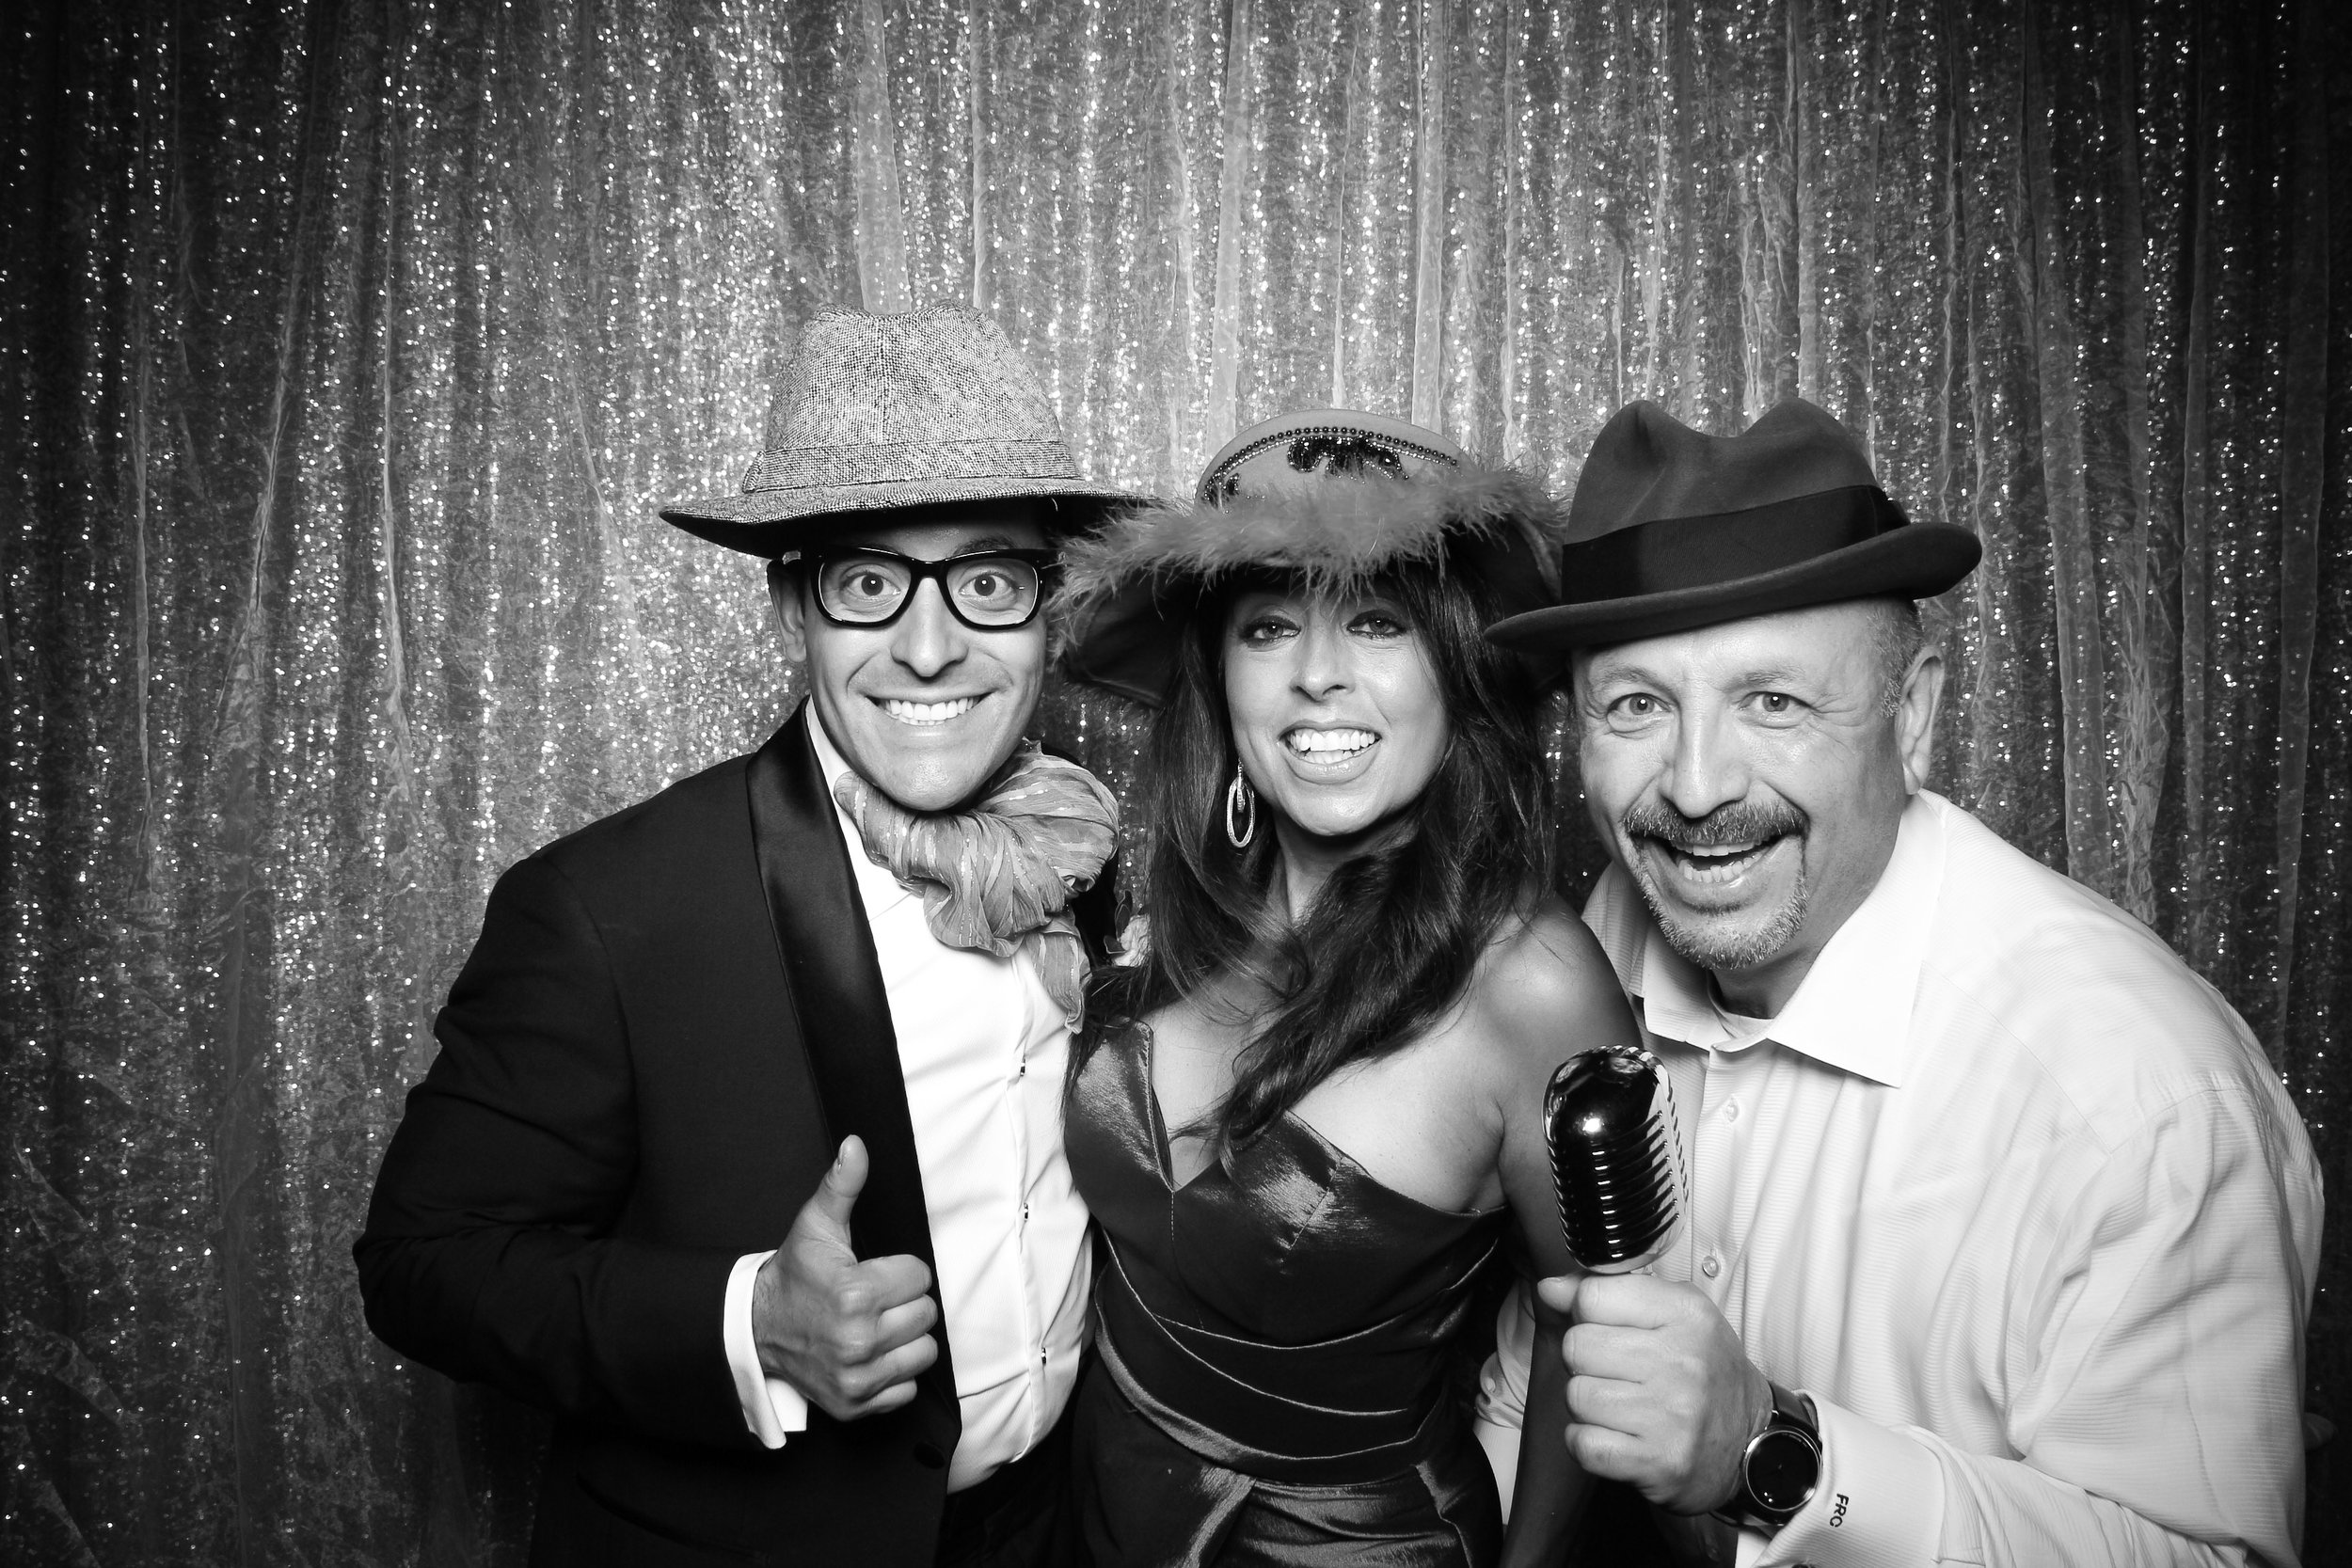 Chicago_Vintage_Wedding_Photobooth_Medinah_Country_Club_19.jpg